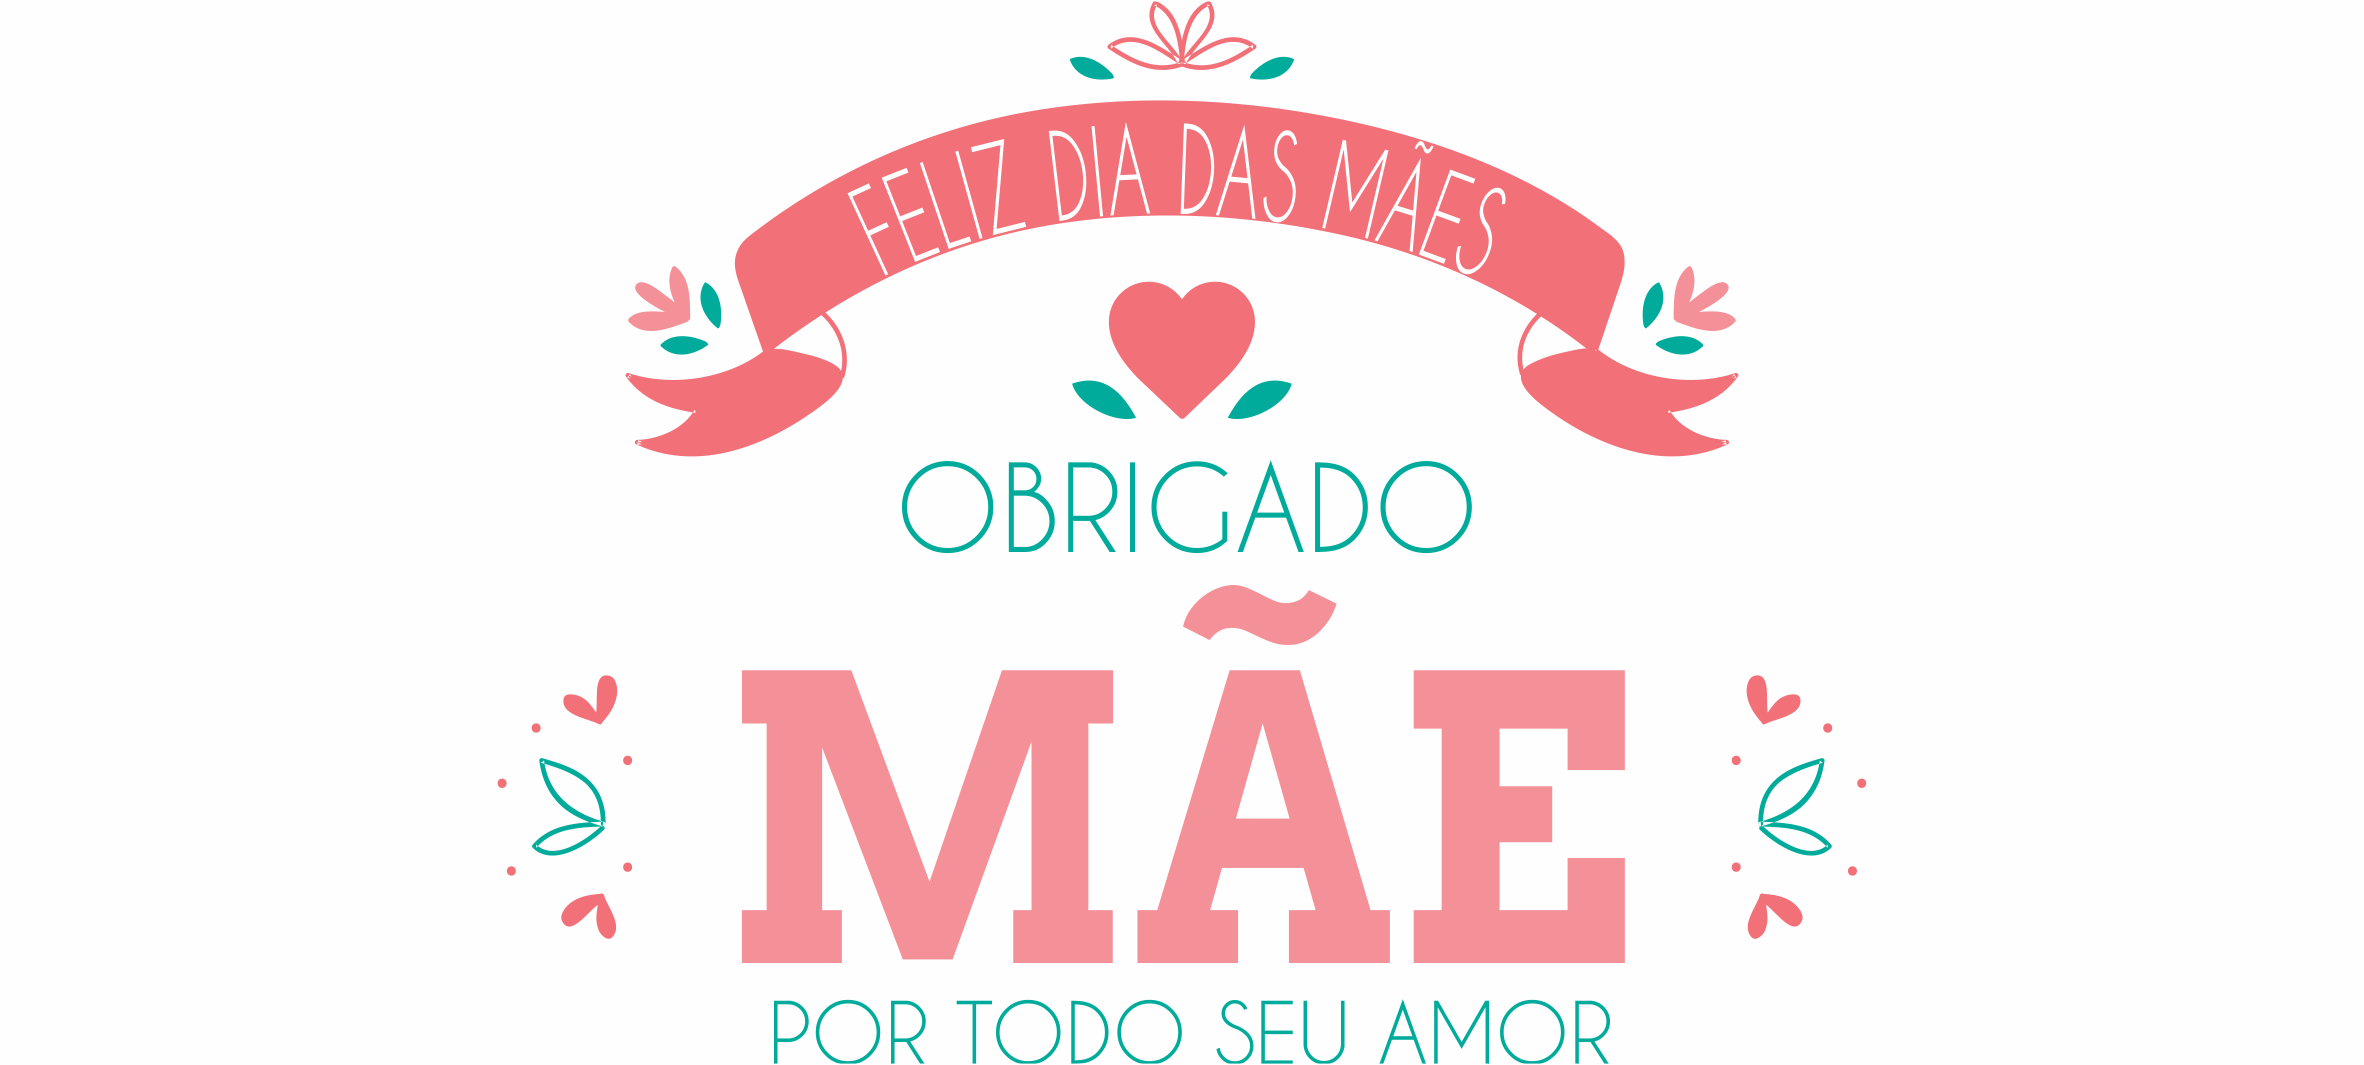 Dia Das Maes Png 2 Png Image